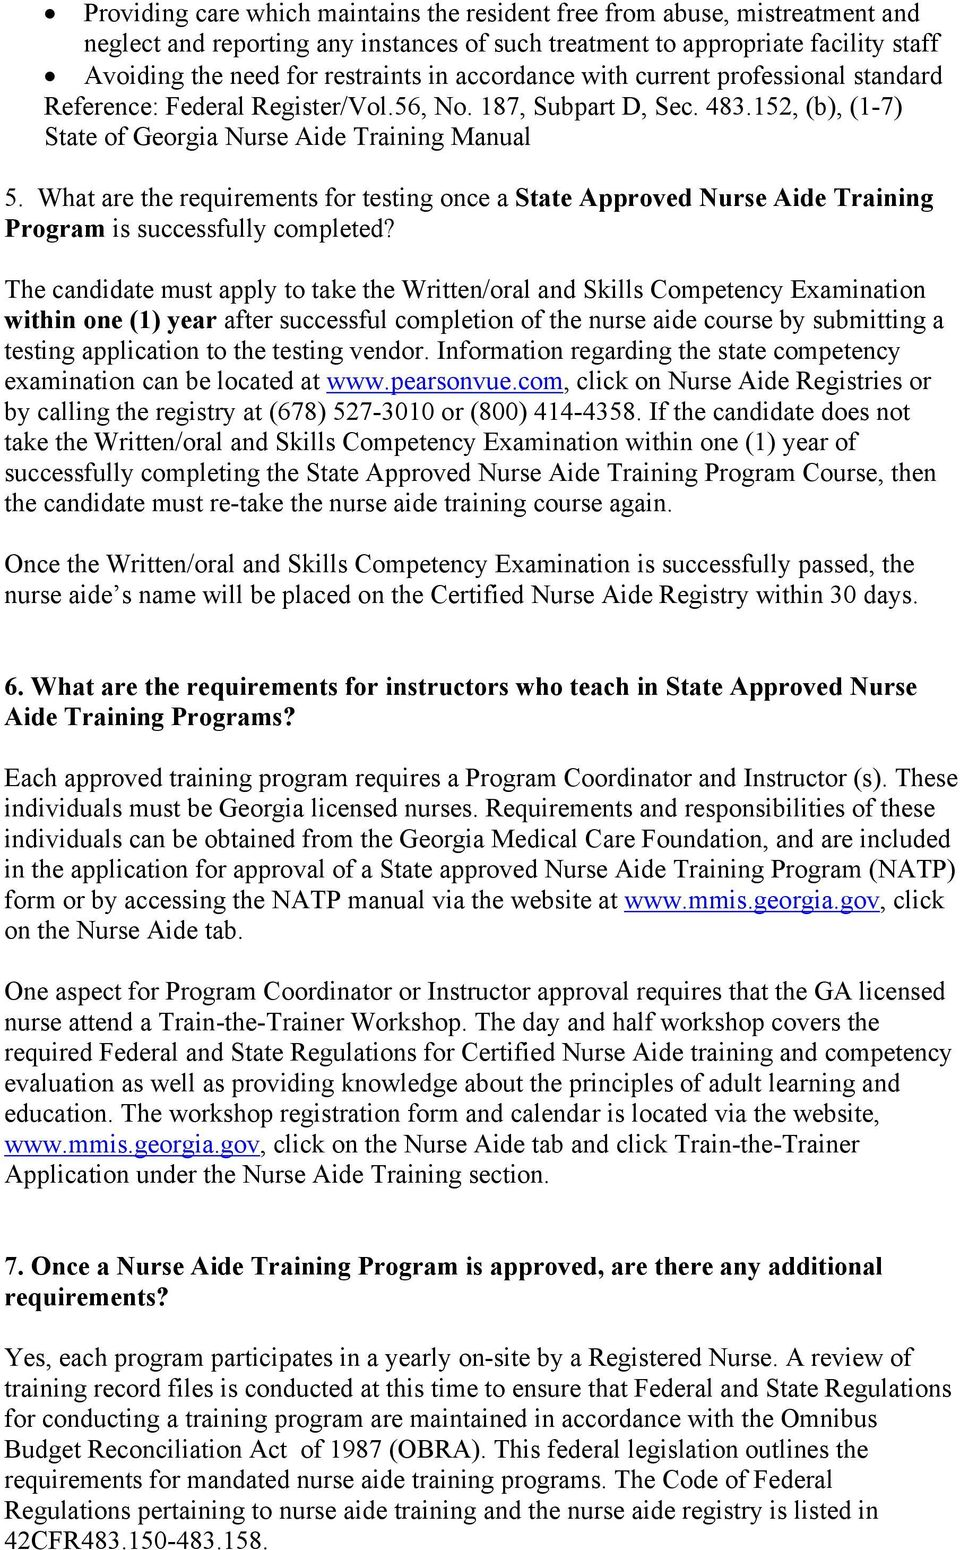 What are the requirements for testing once a State Approved Nurse Aide Training Program is successfully completed?